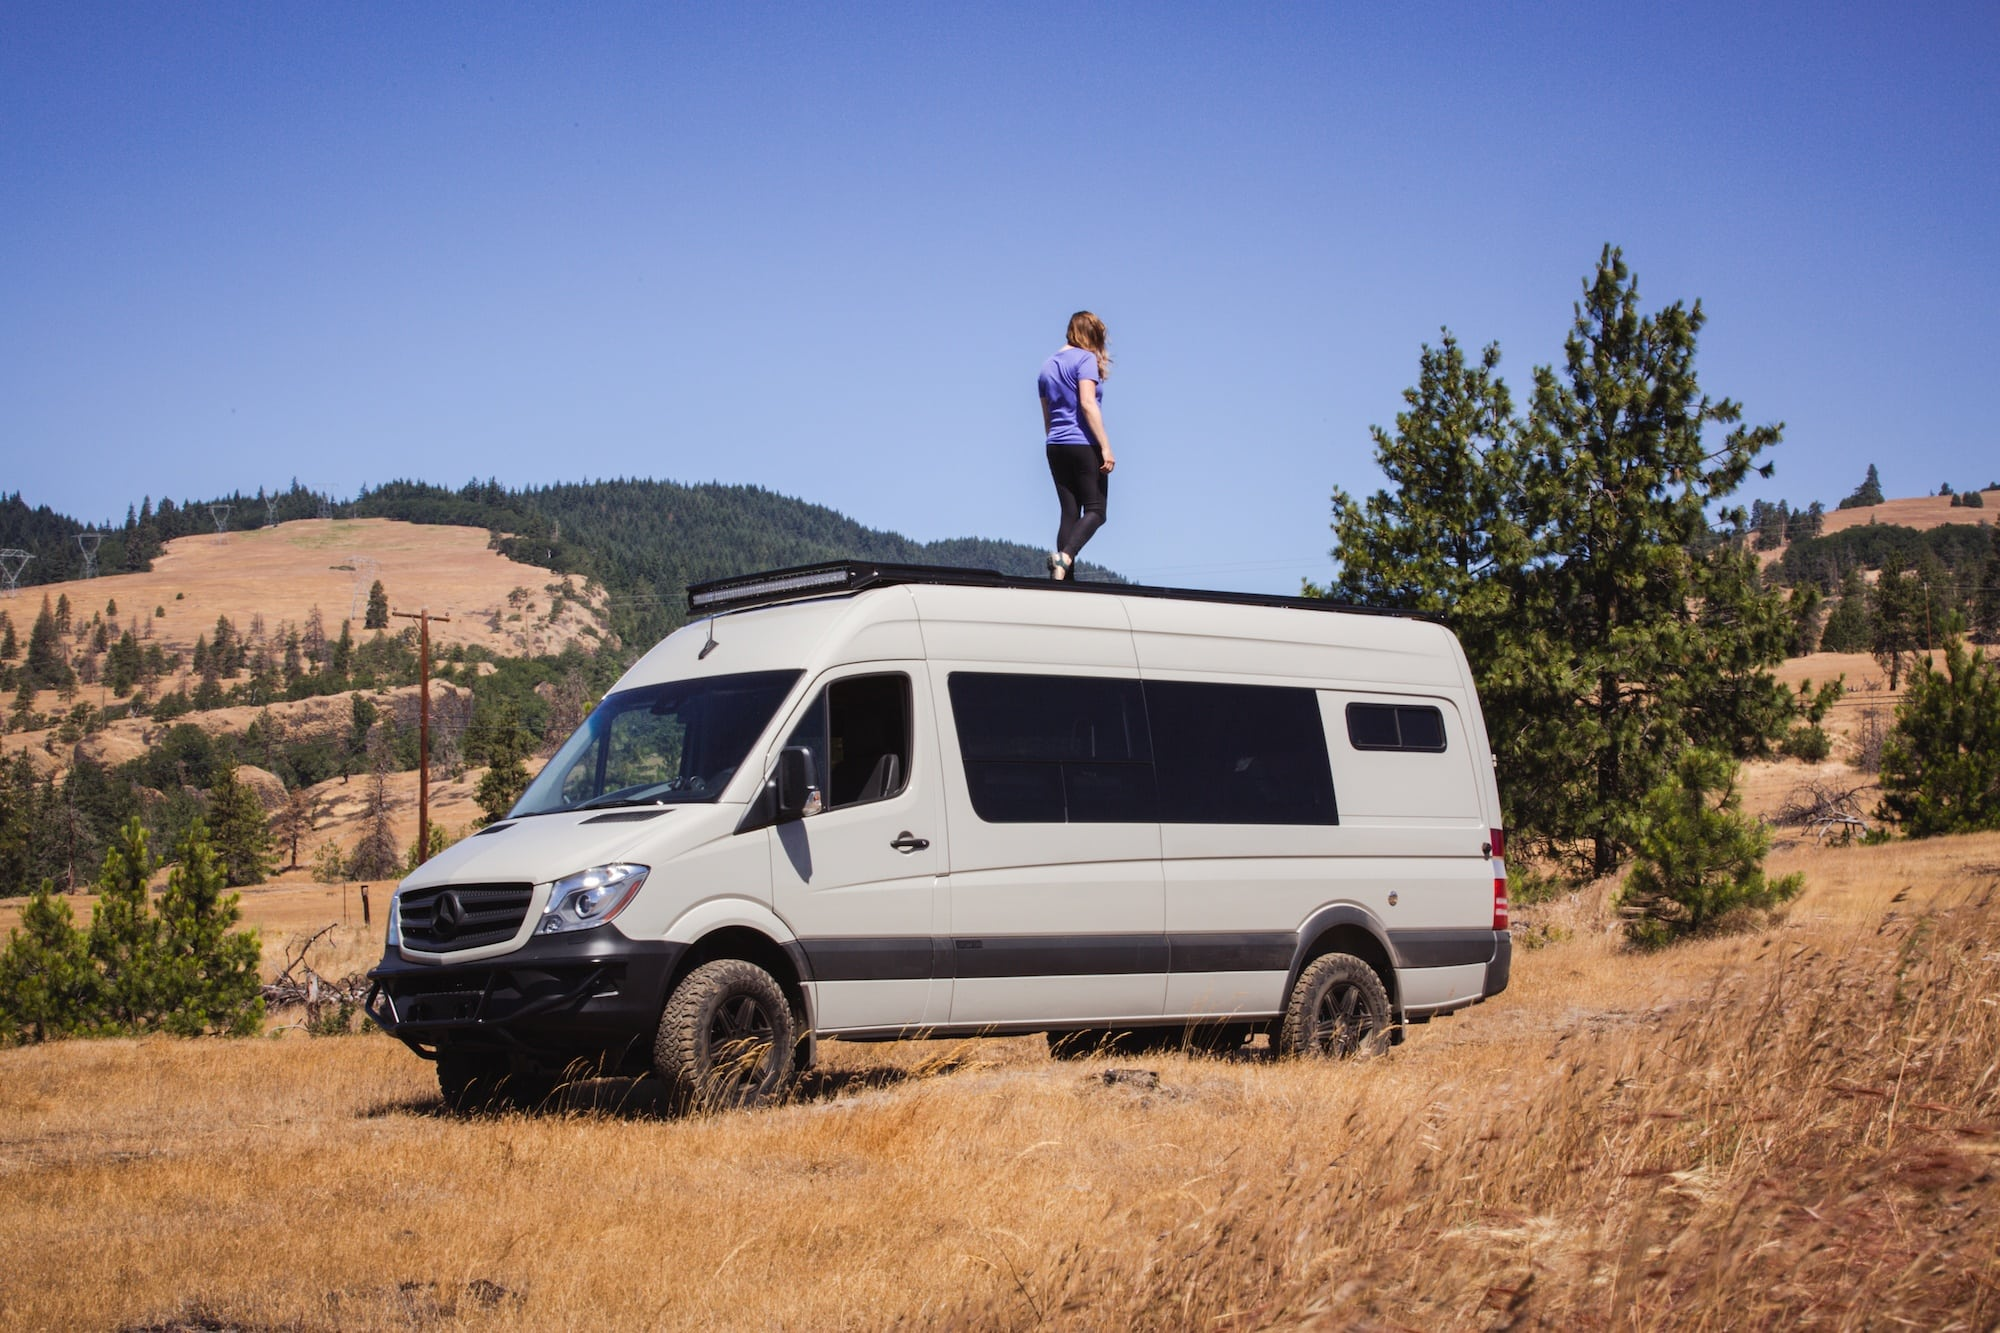 """Tour Bearfoot Theory's Outside Van Sprinter Van conversion. This 4x4 170"""" Sprinter camper has everything you need for off-the-grid vanlife adventures."""